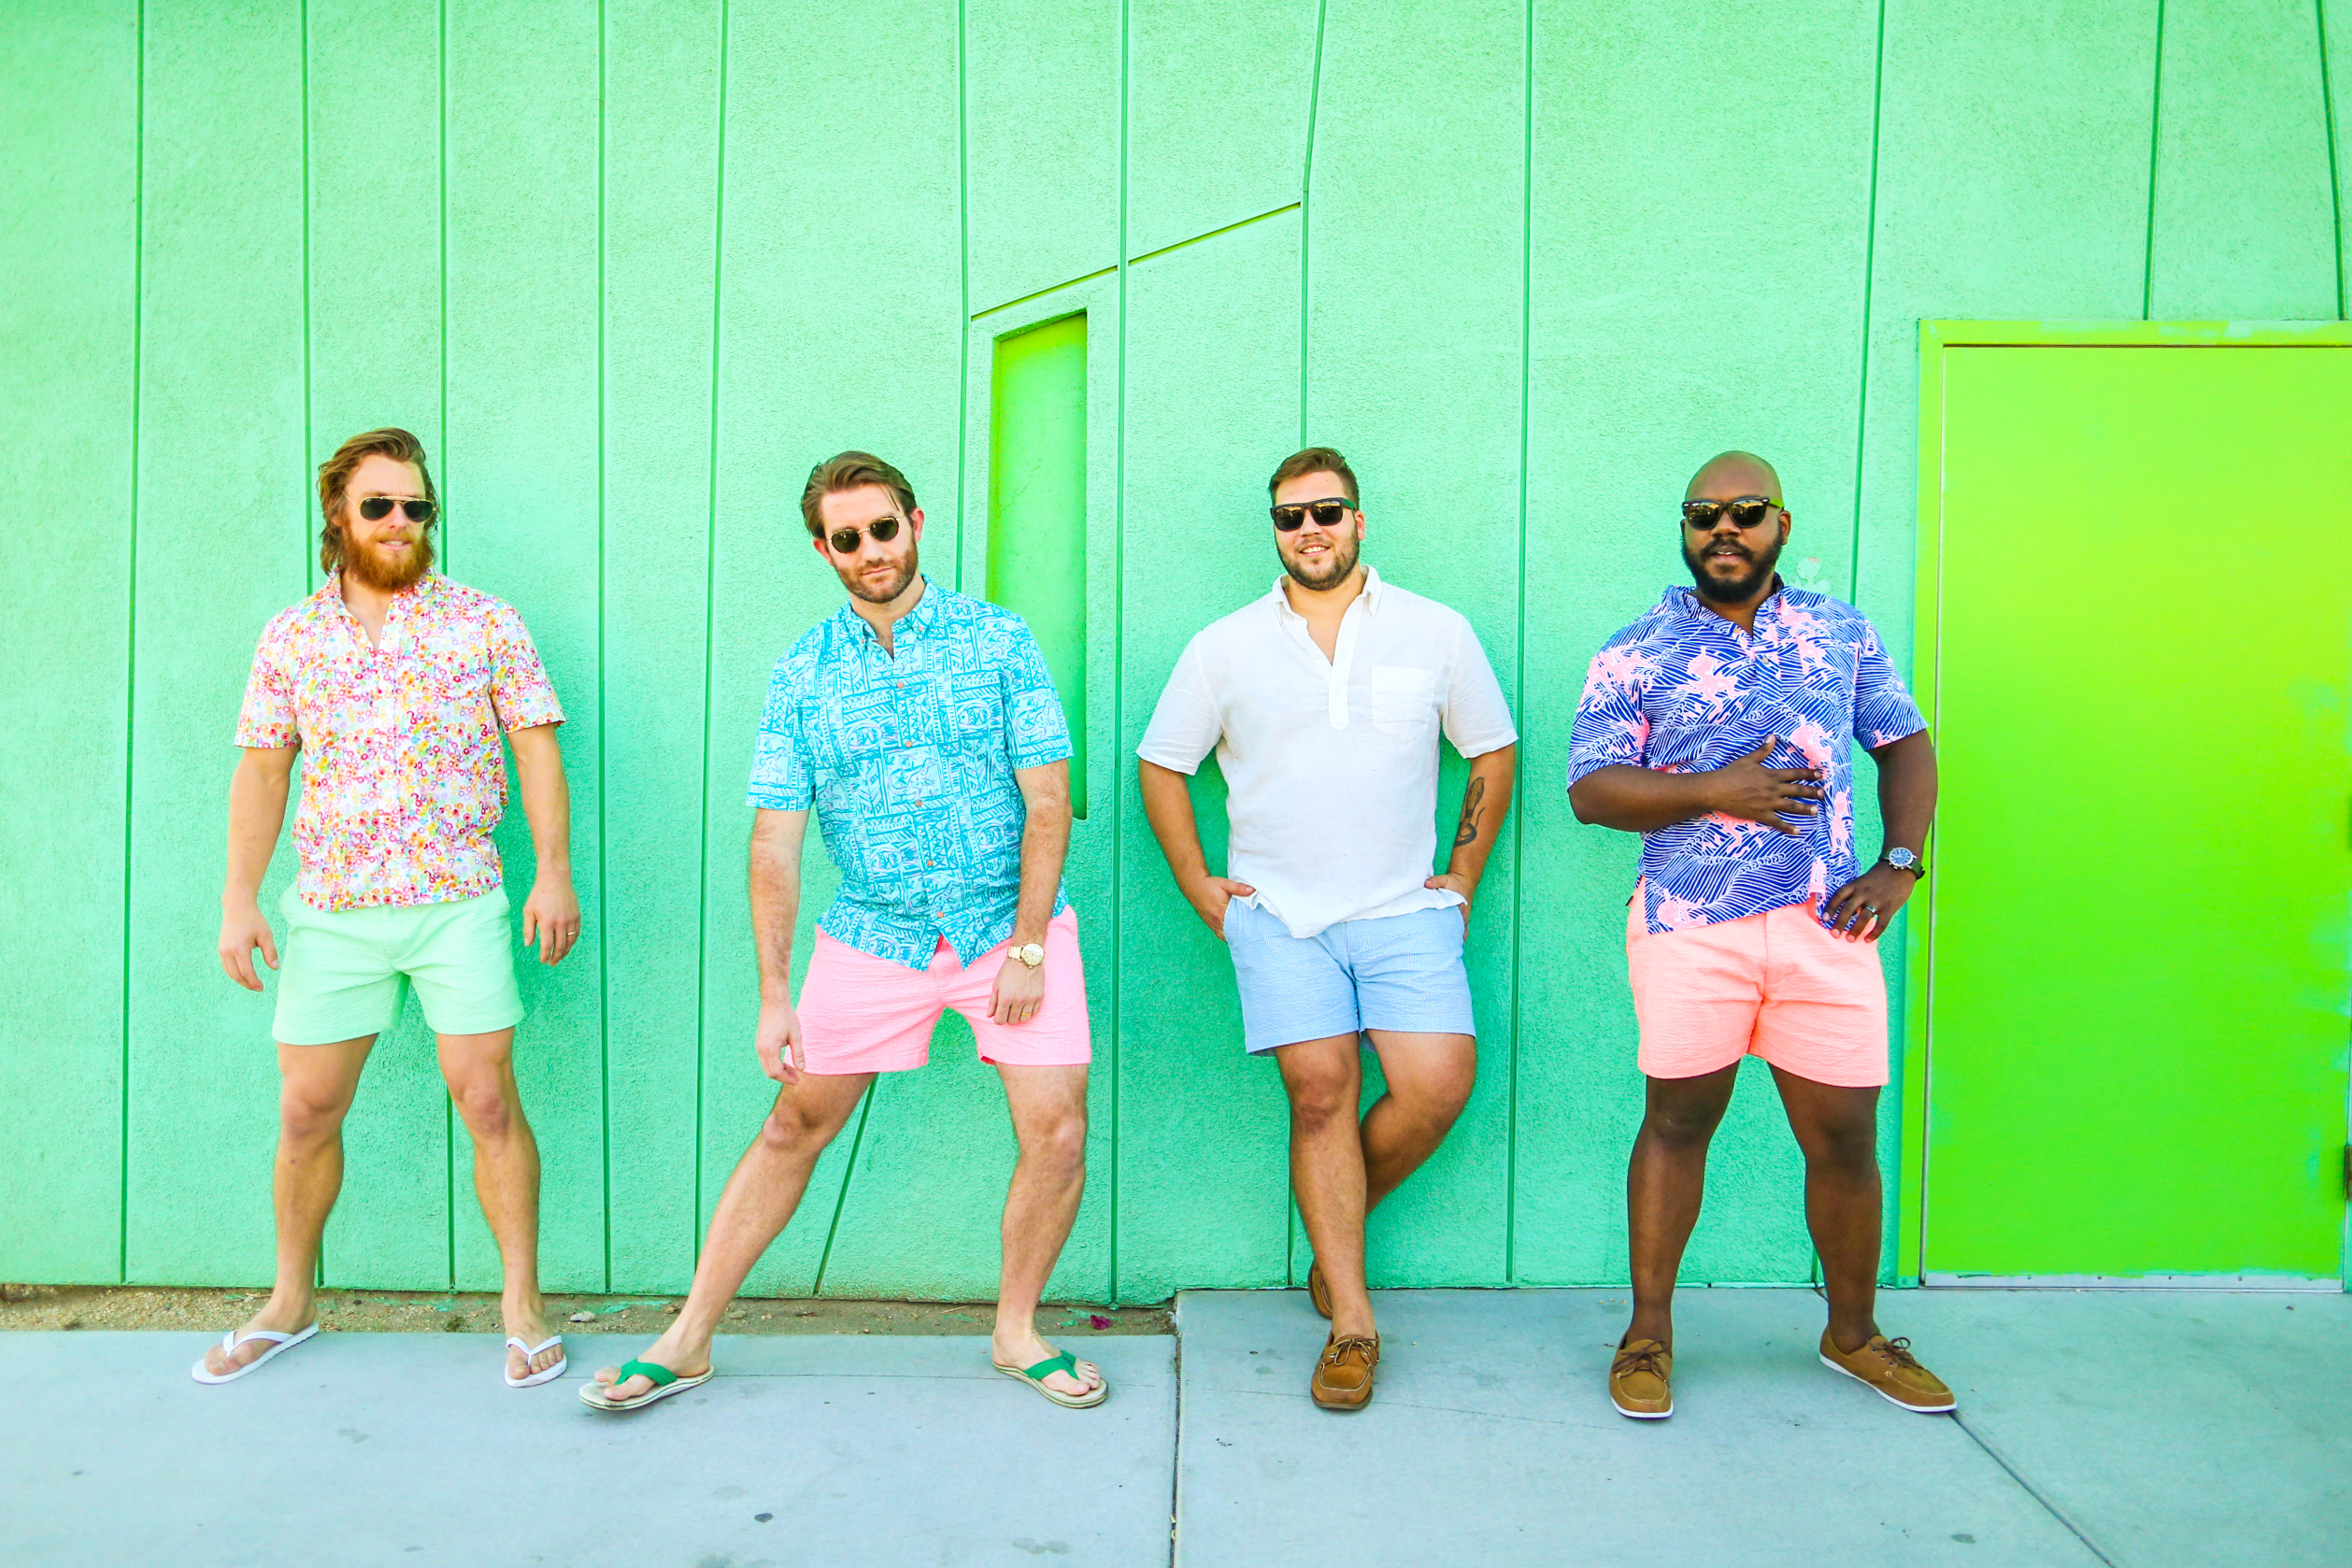 Chubbies is best known for its colorful men's shorts.